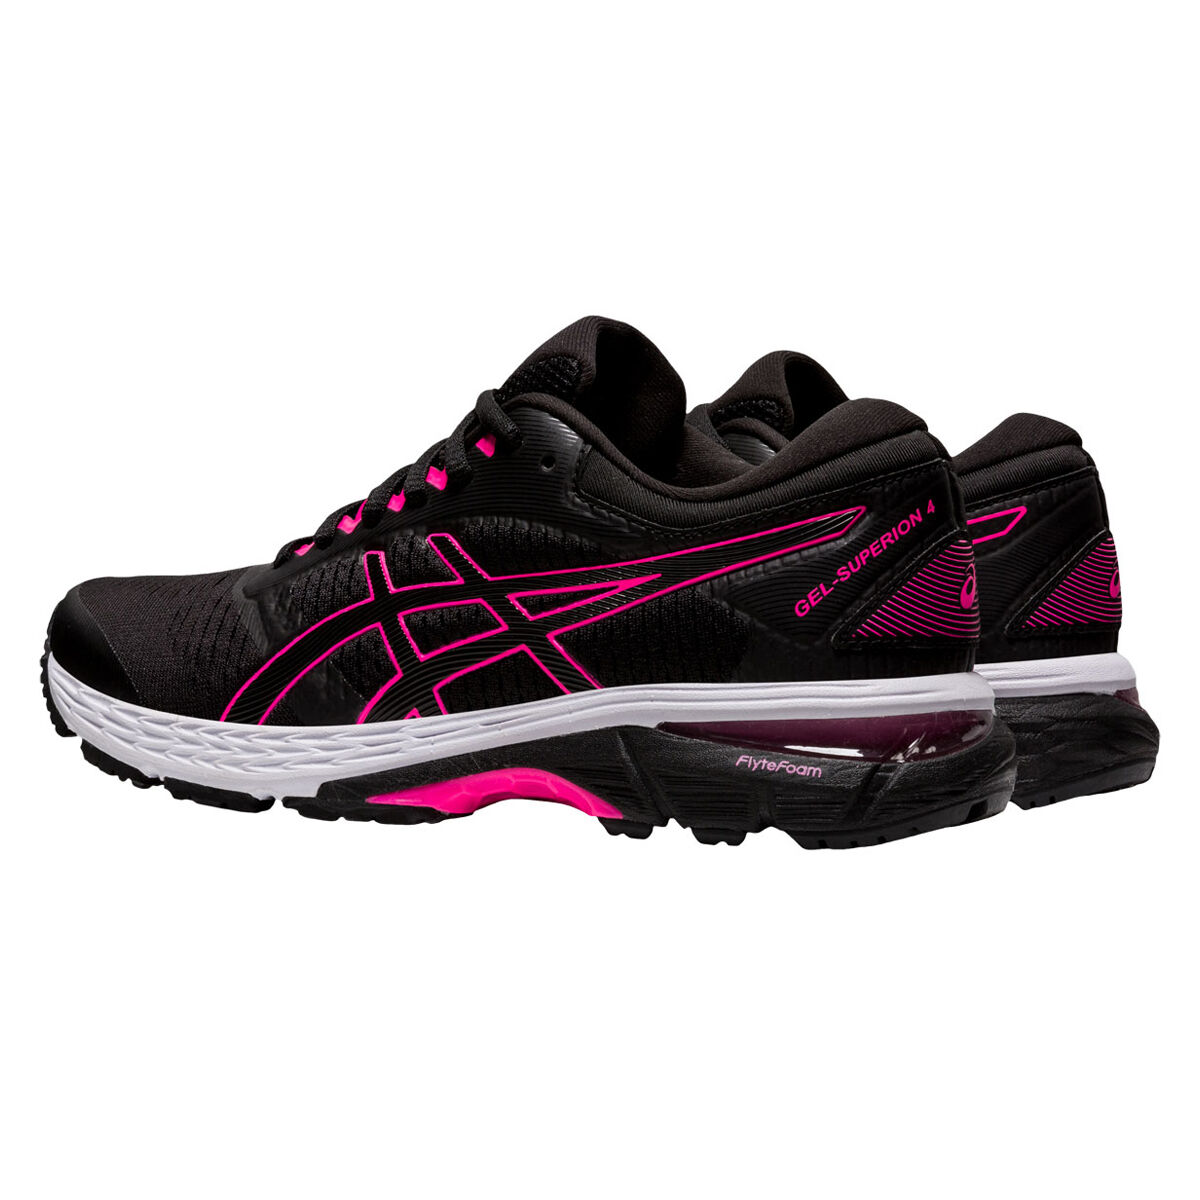 Asics GEL Superion 4 Womens Running Shoes | Thesommelierchef Sport